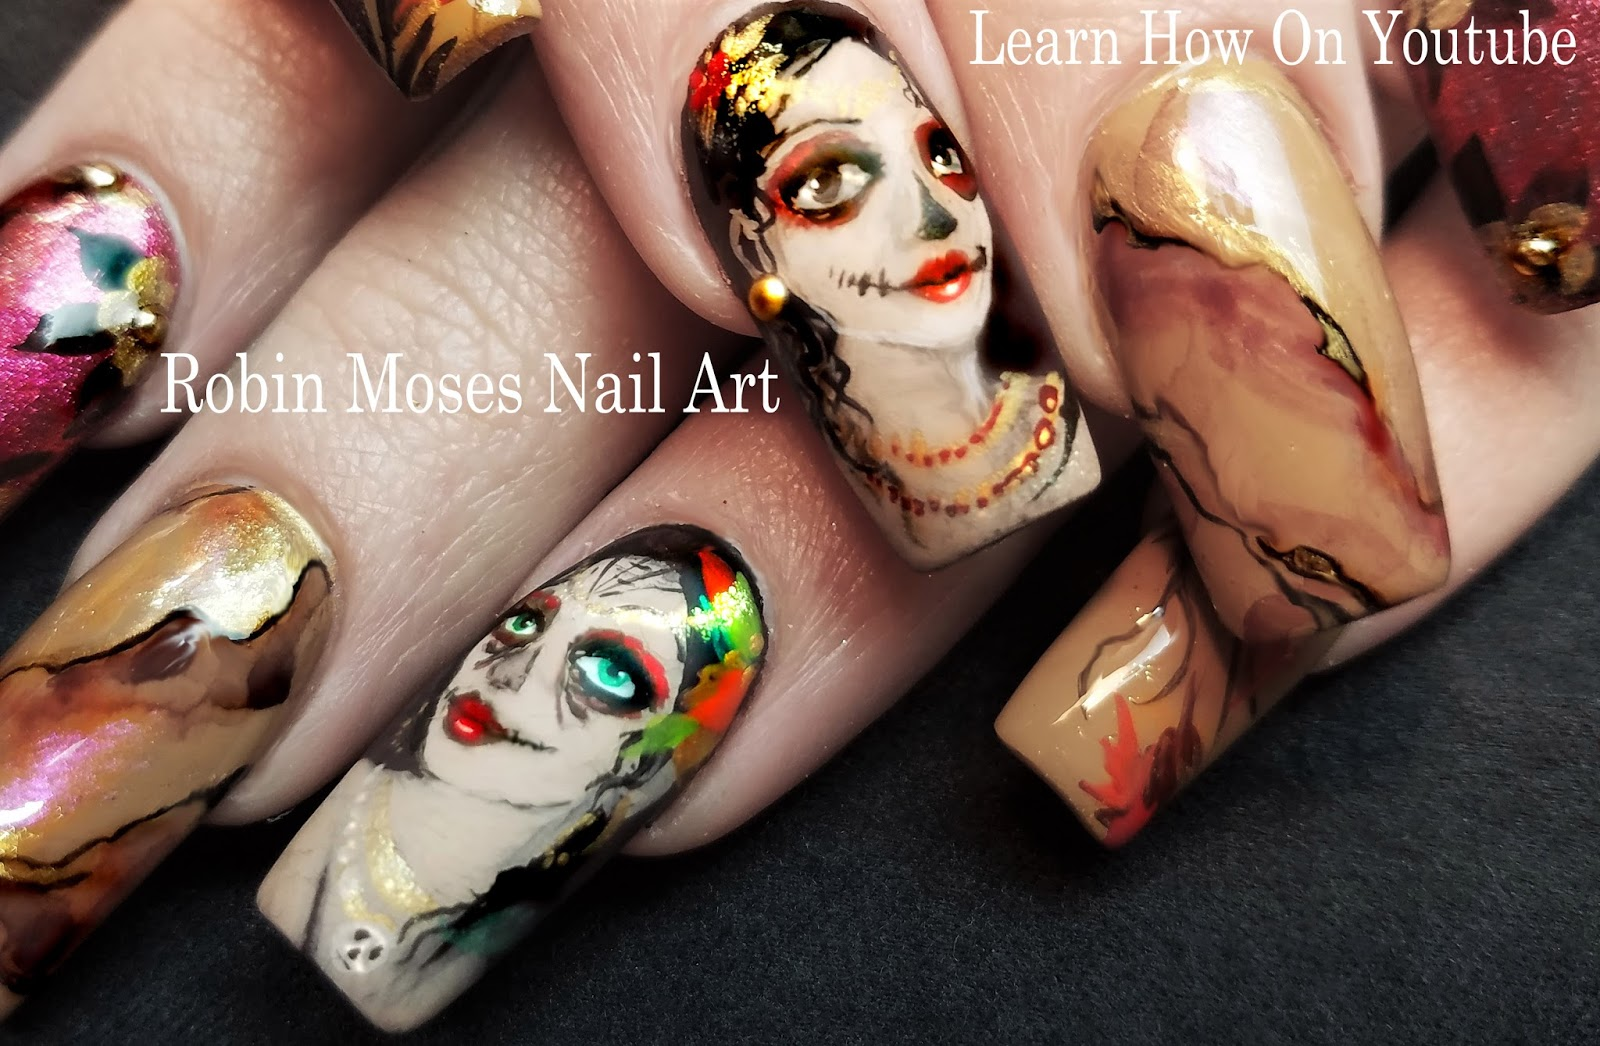 Robin moses nail art fall nails playlist full length autumn fall nails playlist full length autumn nail art designs diy tutorials prinsesfo Images